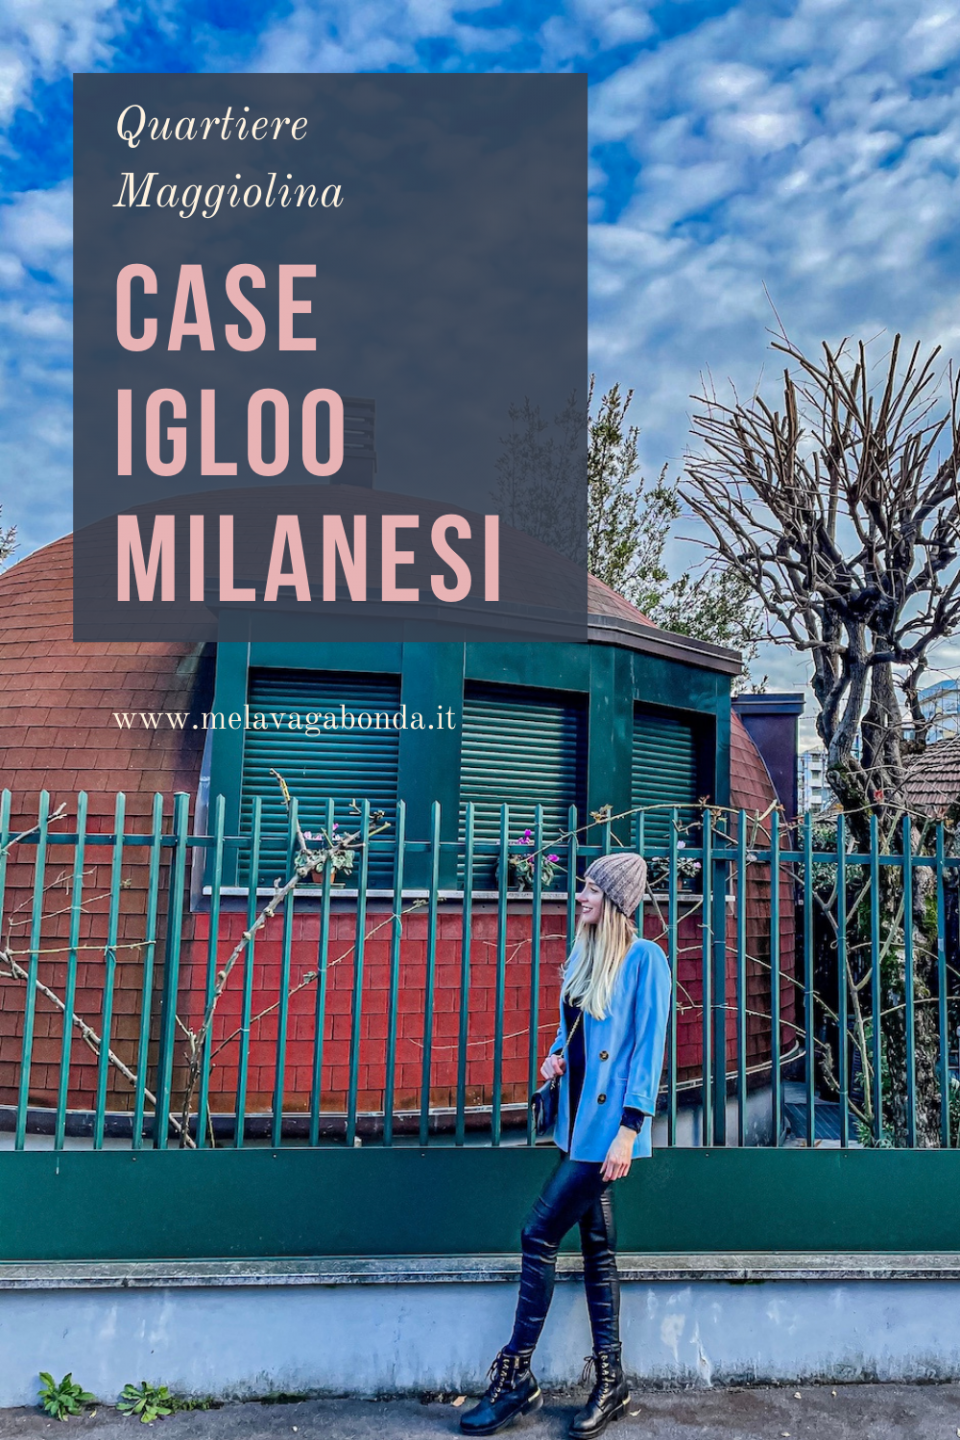 Case igloo milanesi